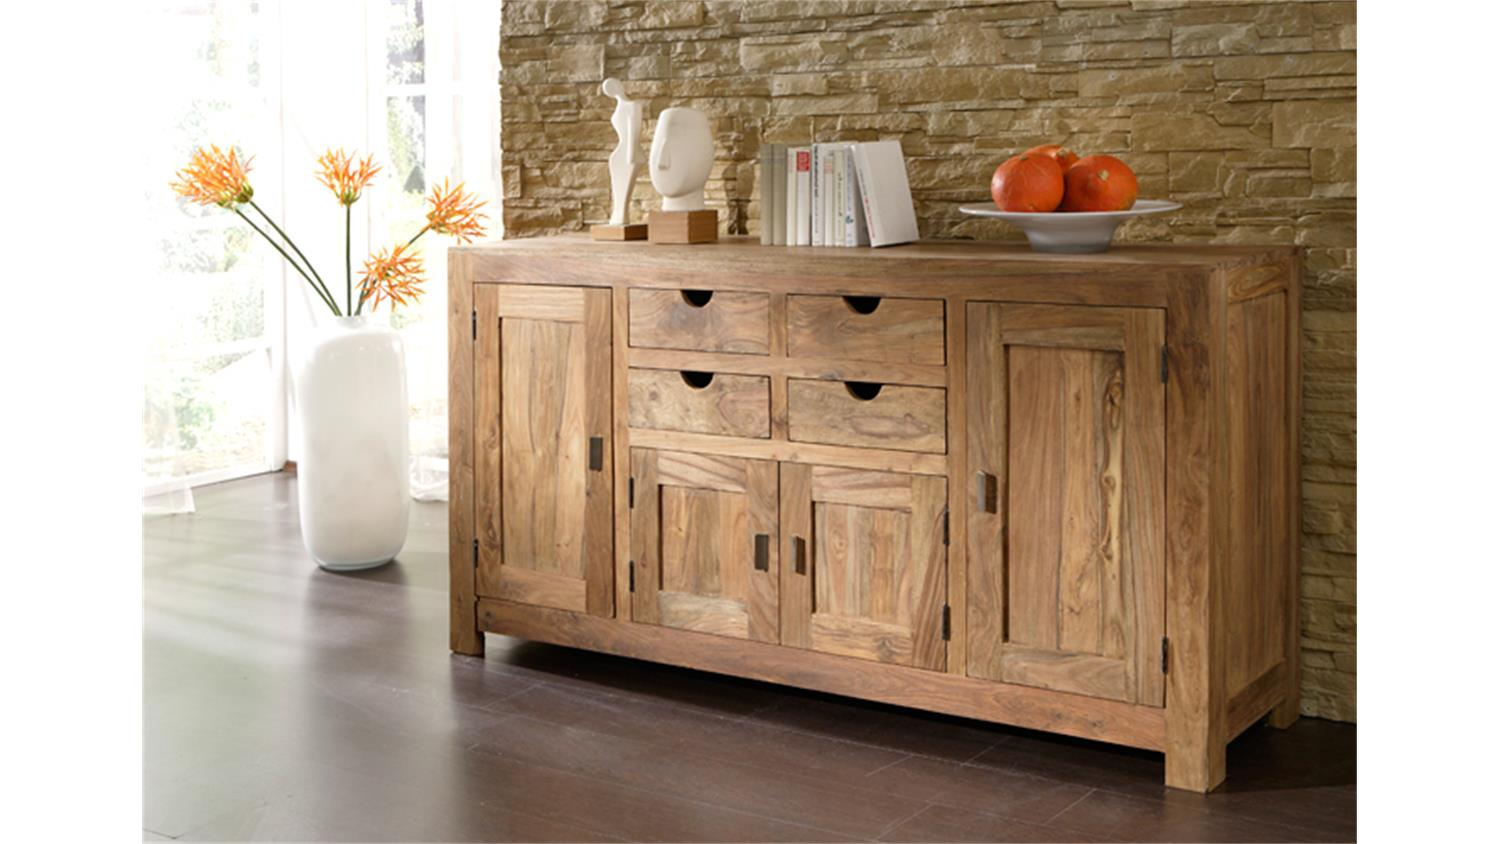 Möbel Landhausstil Onlineshop Sideboard Yoga Sheesham Massiv Landhausstil Von Wolf Möbel